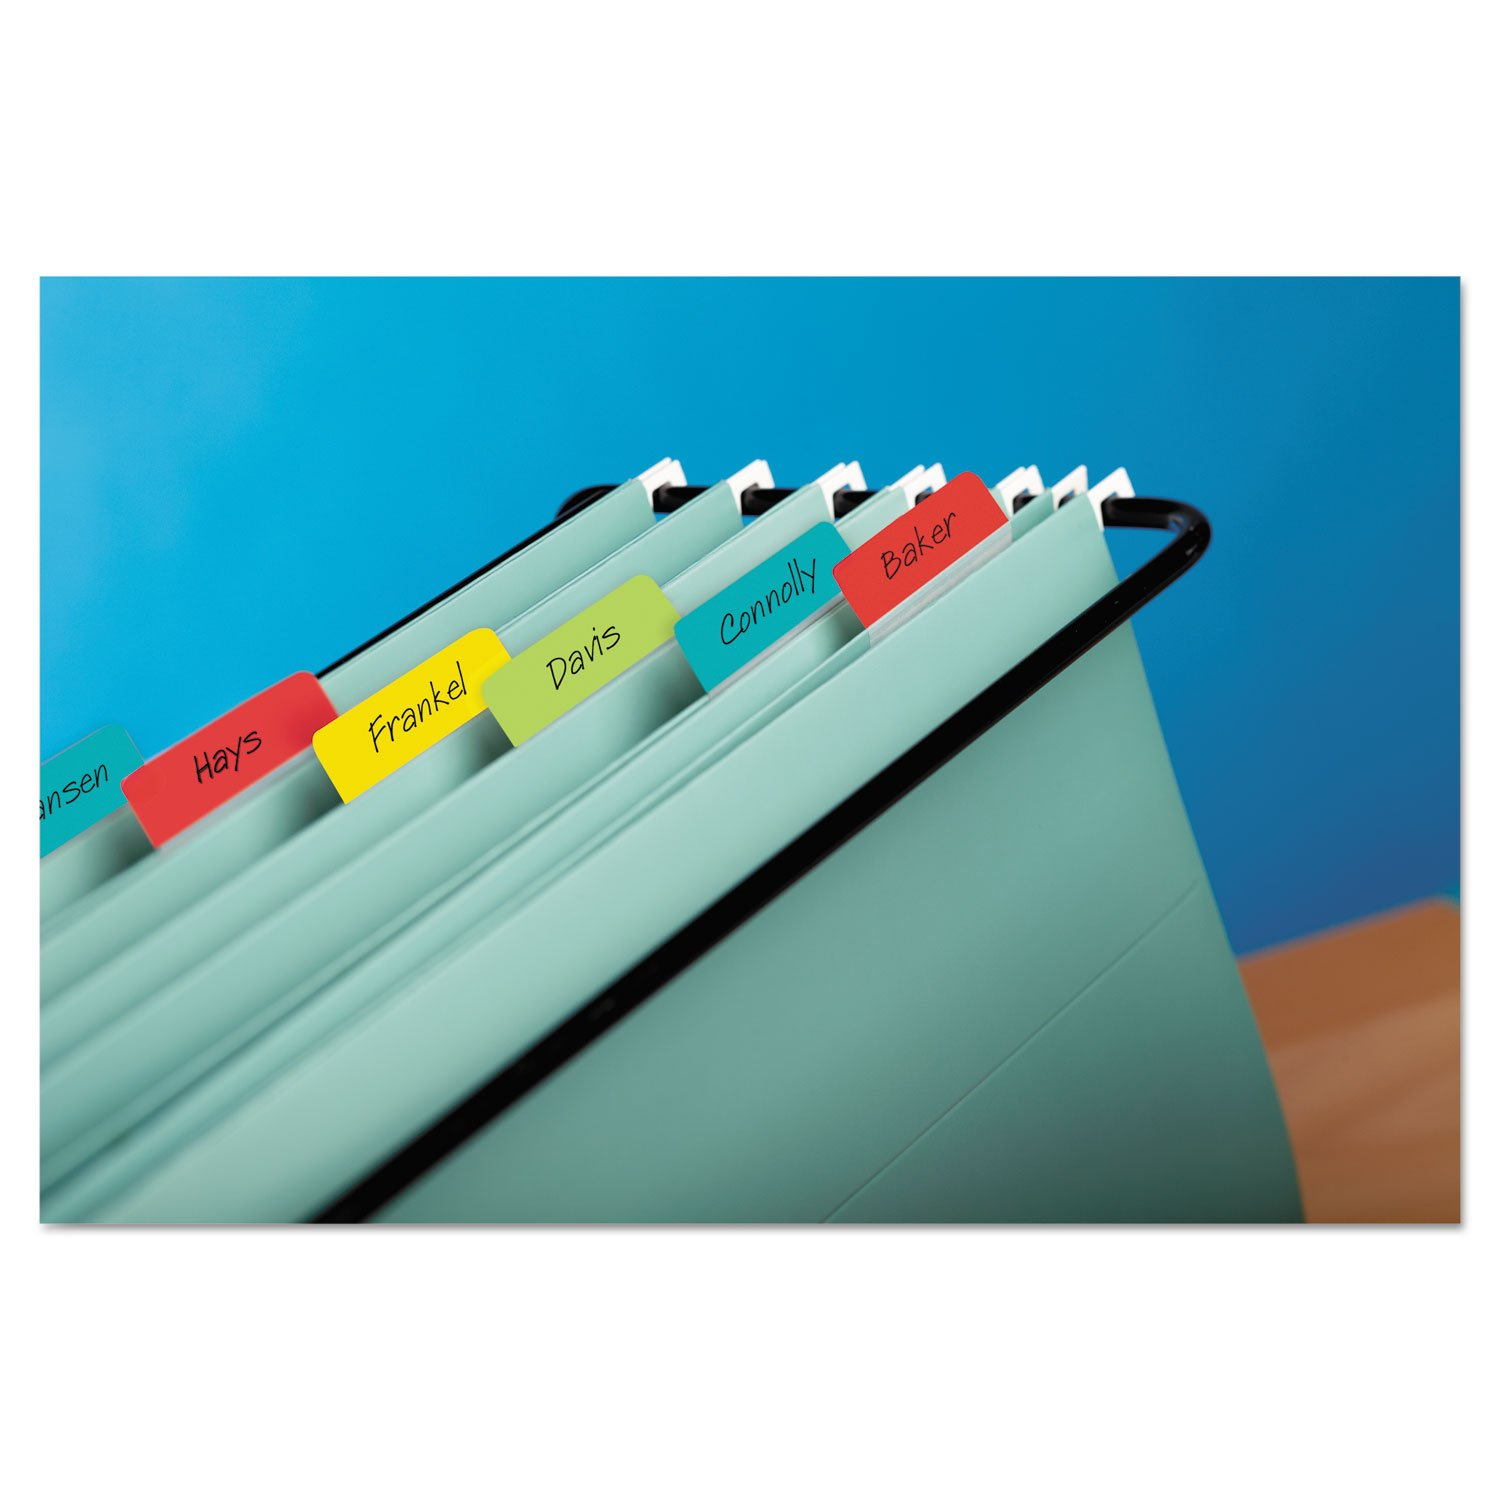 Post-it 686AALYR Angled Tabs, 2 x 1 1/2, Solid, Aqua/Lime/Red/Yellow, 24/Pack